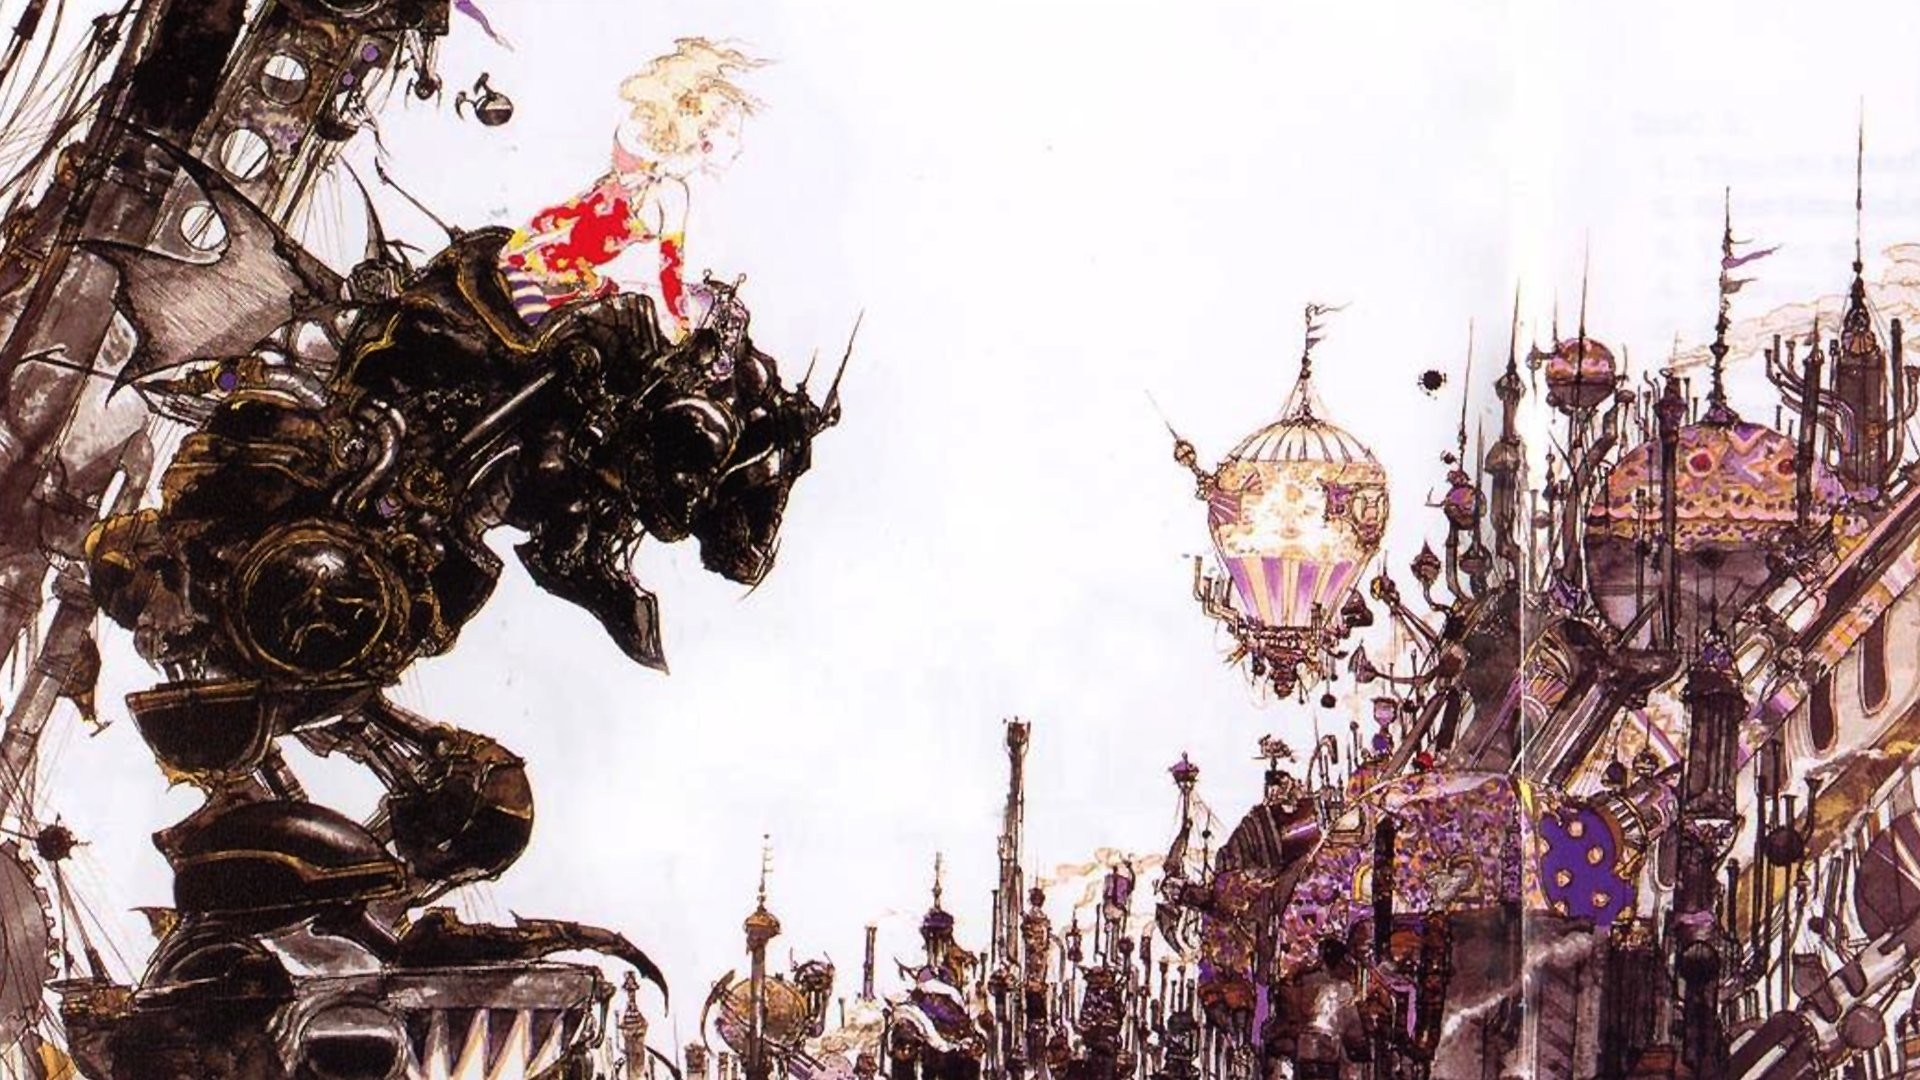 1920x1080 HD Wallpaper | Background ID:599075. 1920x1080 Video Game Final Fantasy VI. 2 Like. Favorite